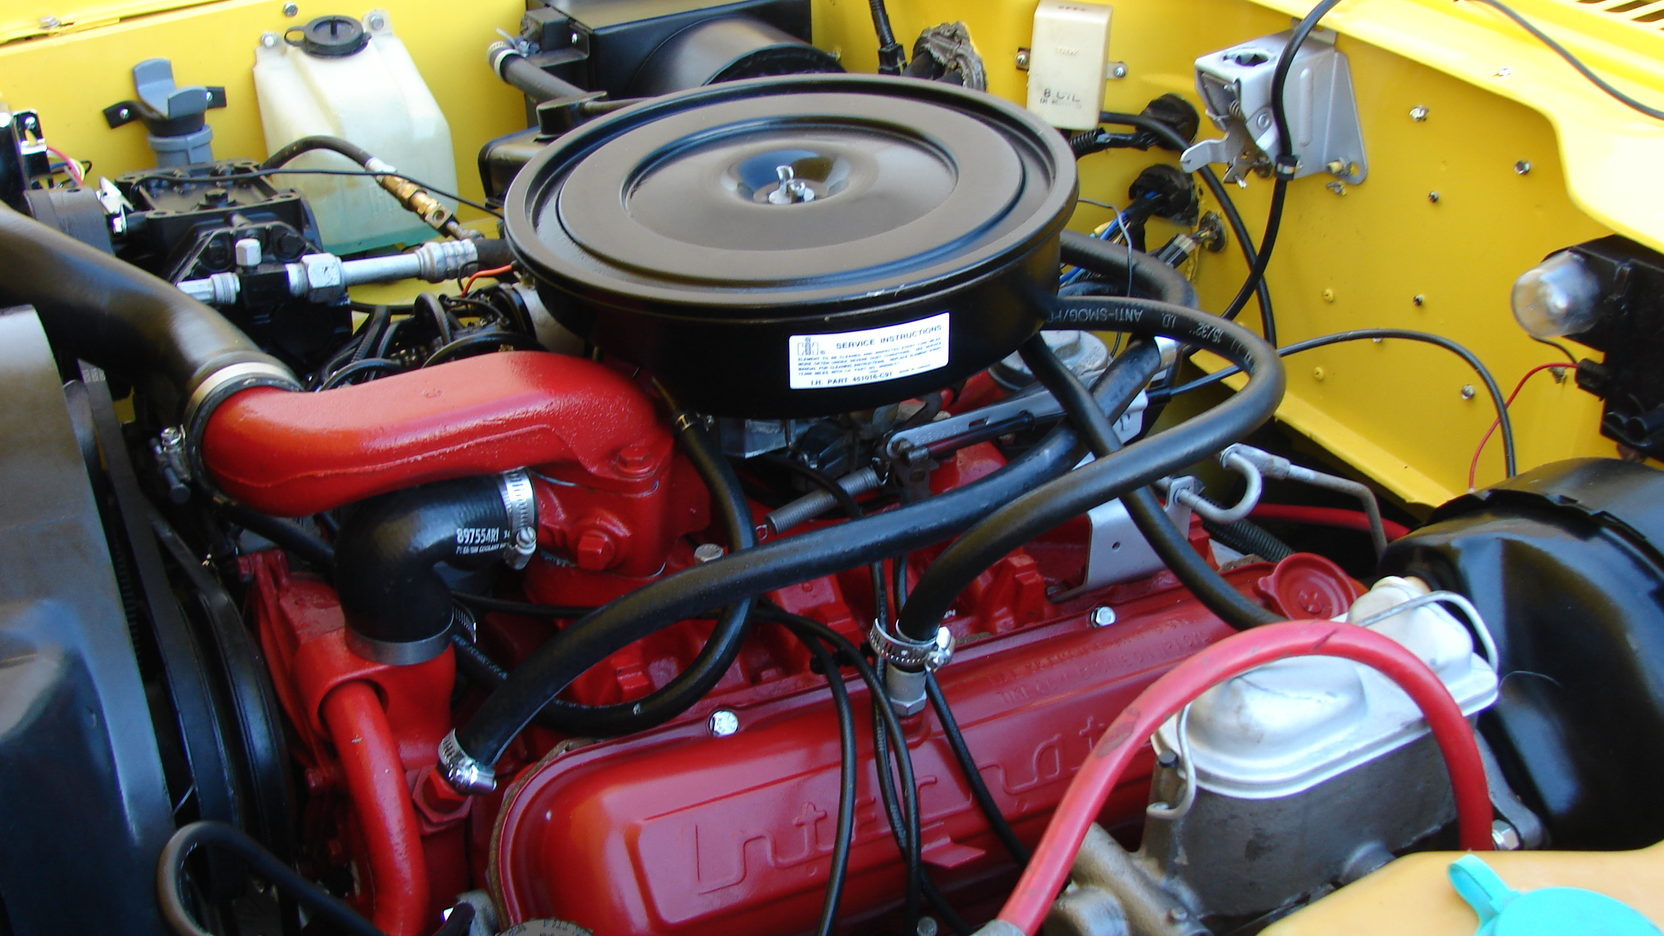 1975 International Scout 345-cubic-inch V-8 engine